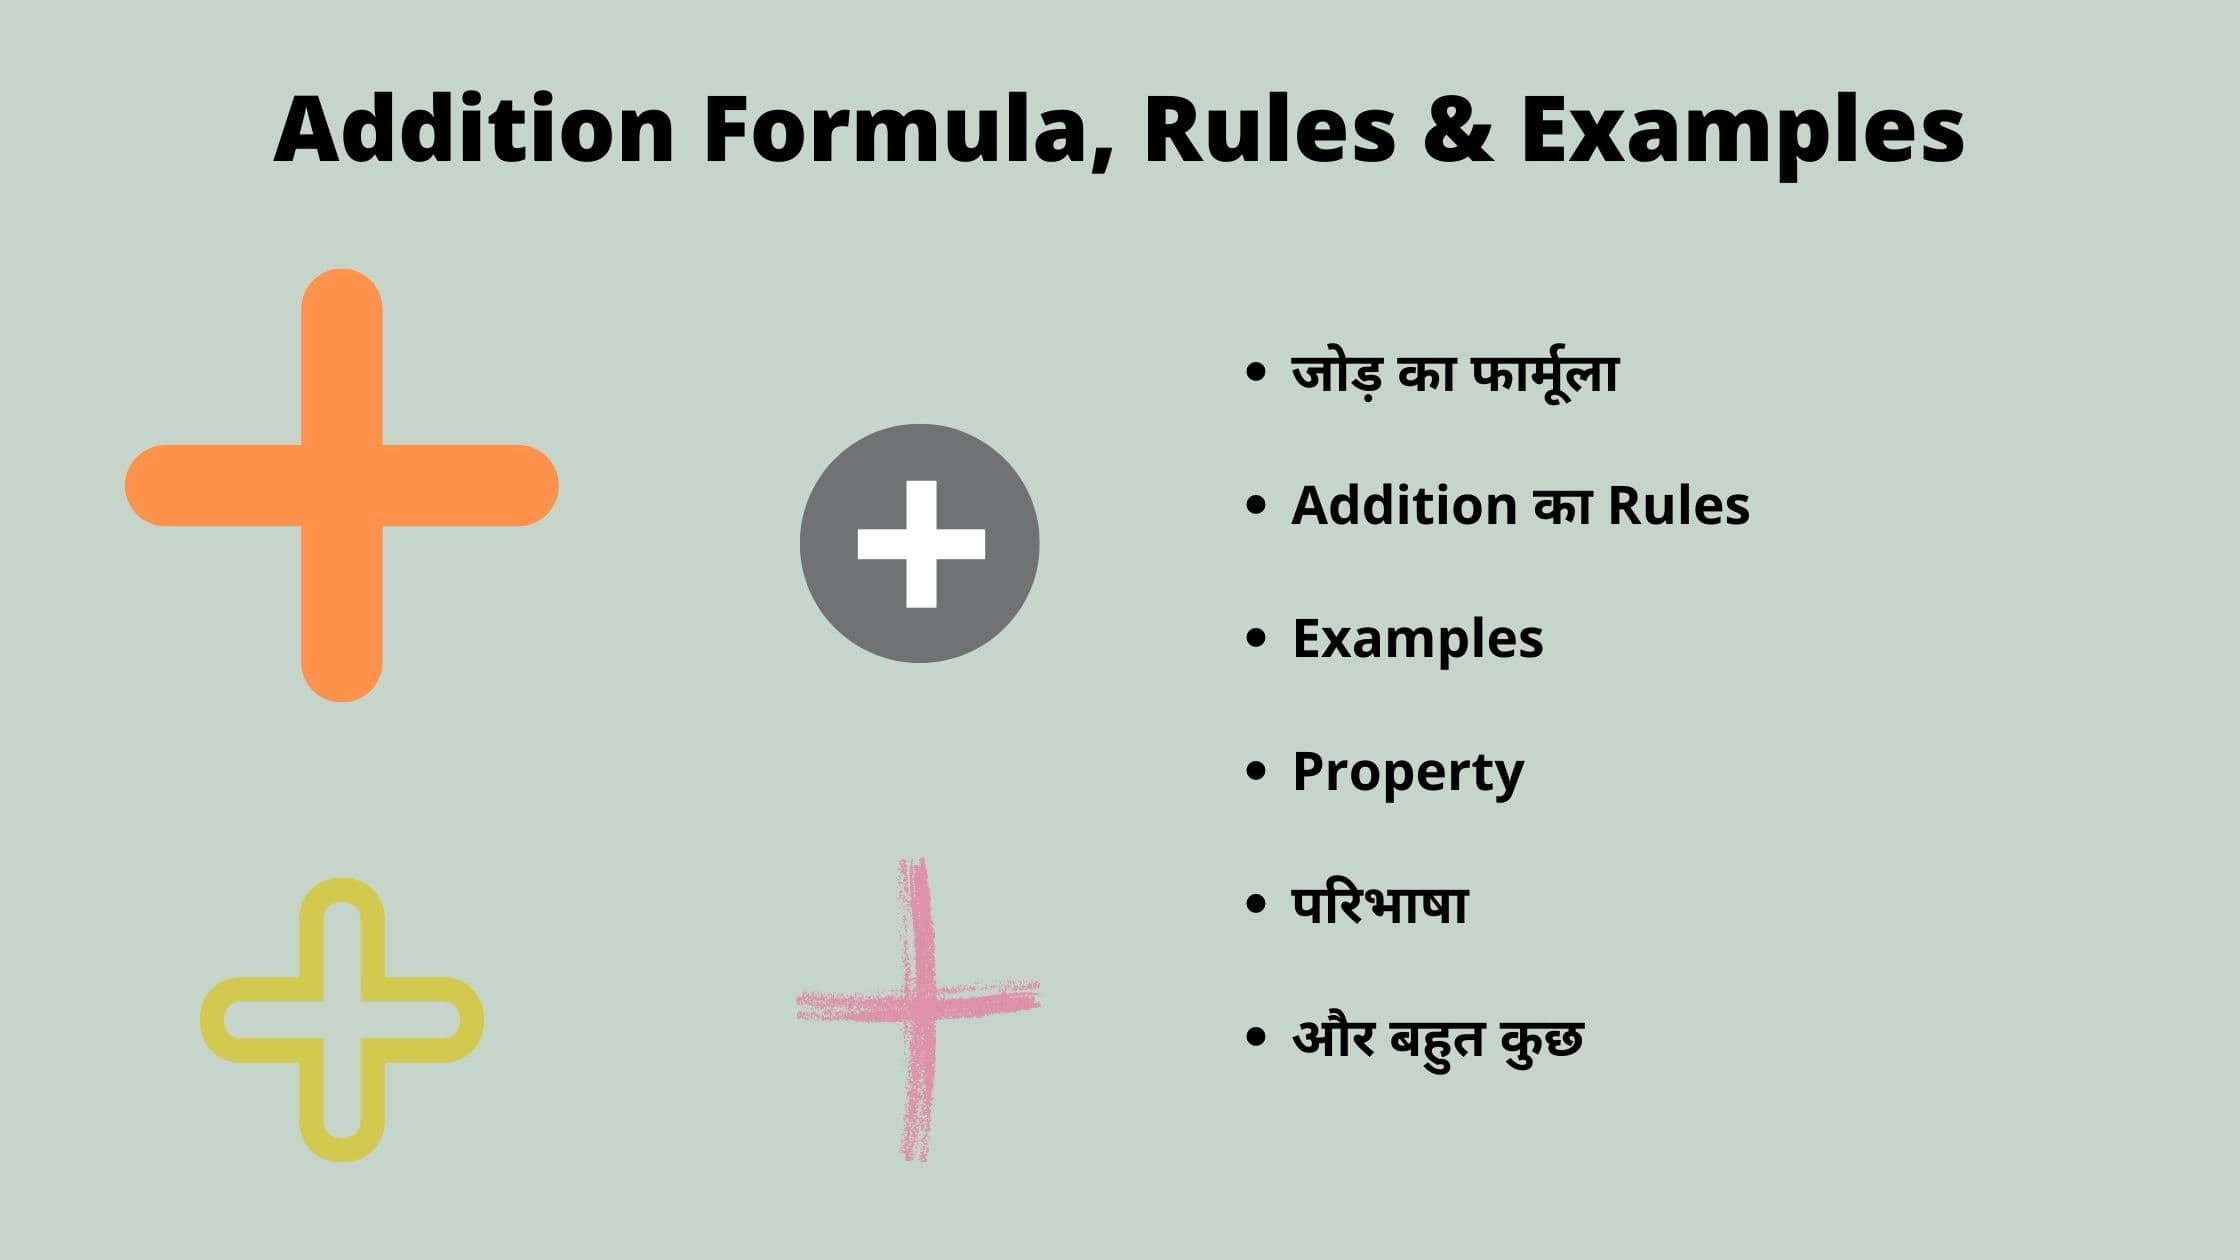 Addition Formula, Rules & Examples